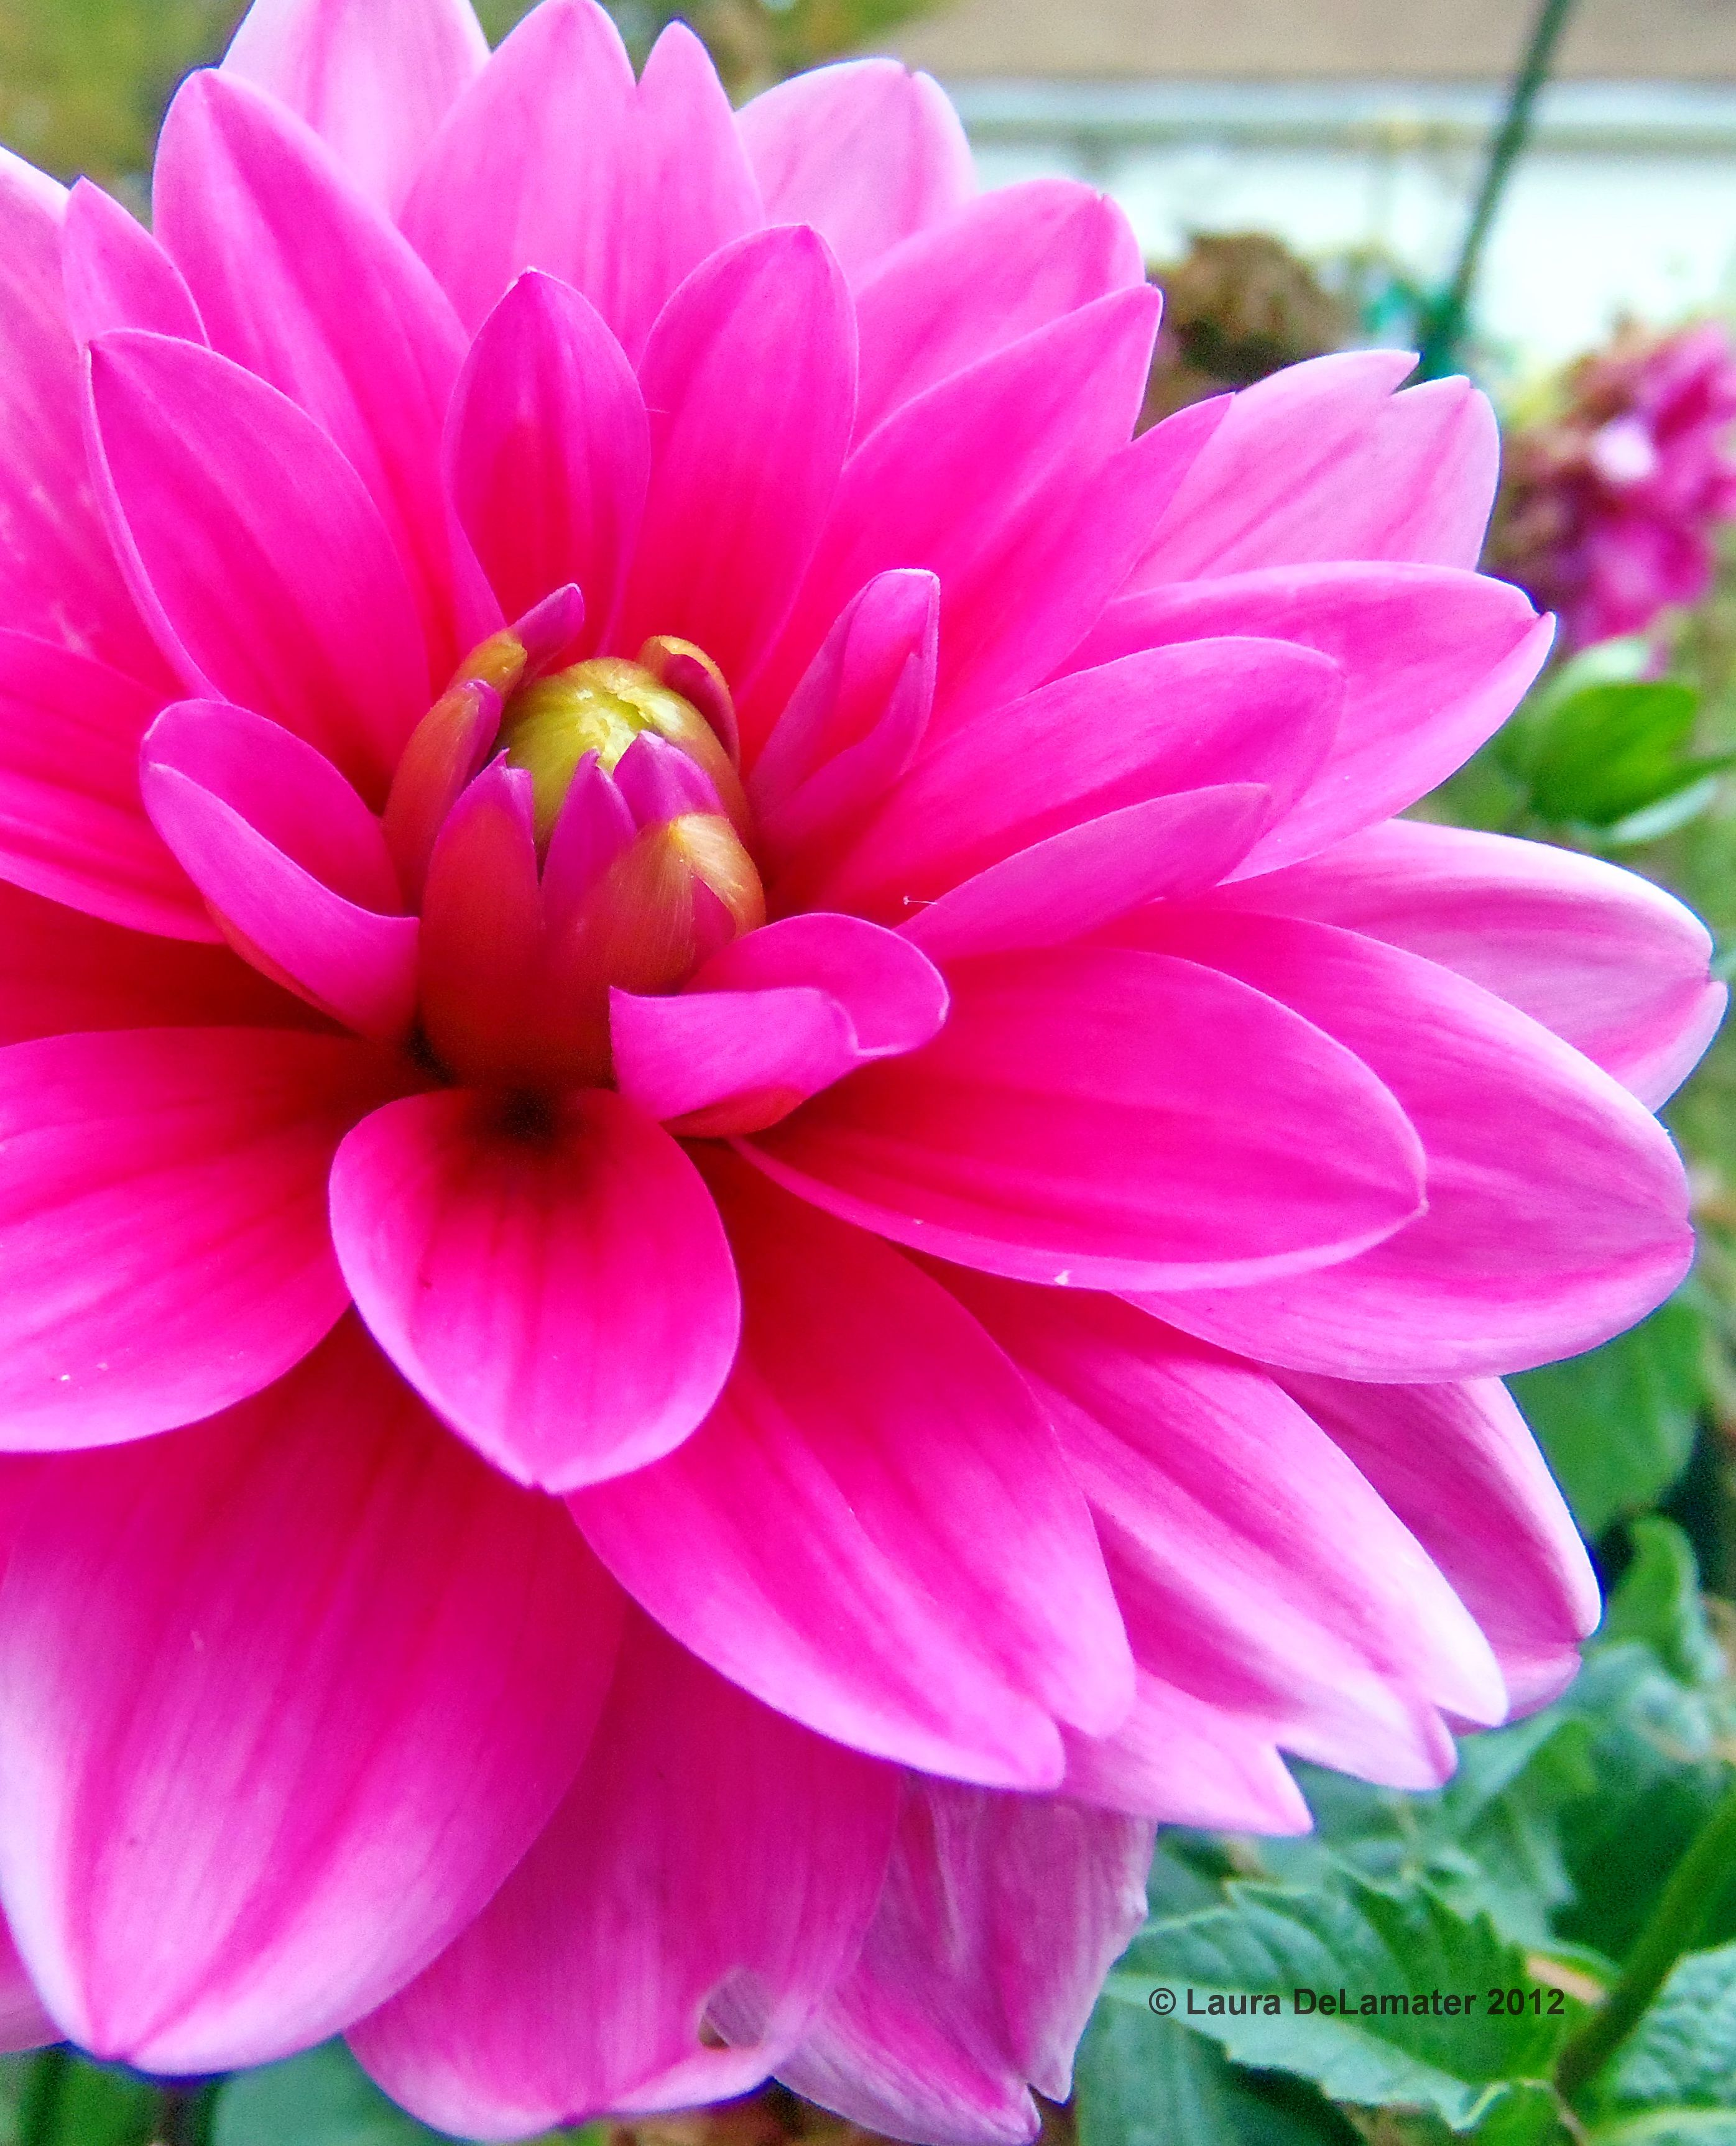 Lovely dahlia one of the most beautiful flowers ever flowers one of the most beautiful flowers ever flowersesbugs pinterest dahlia beautiful flowers and backyard izmirmasajfo